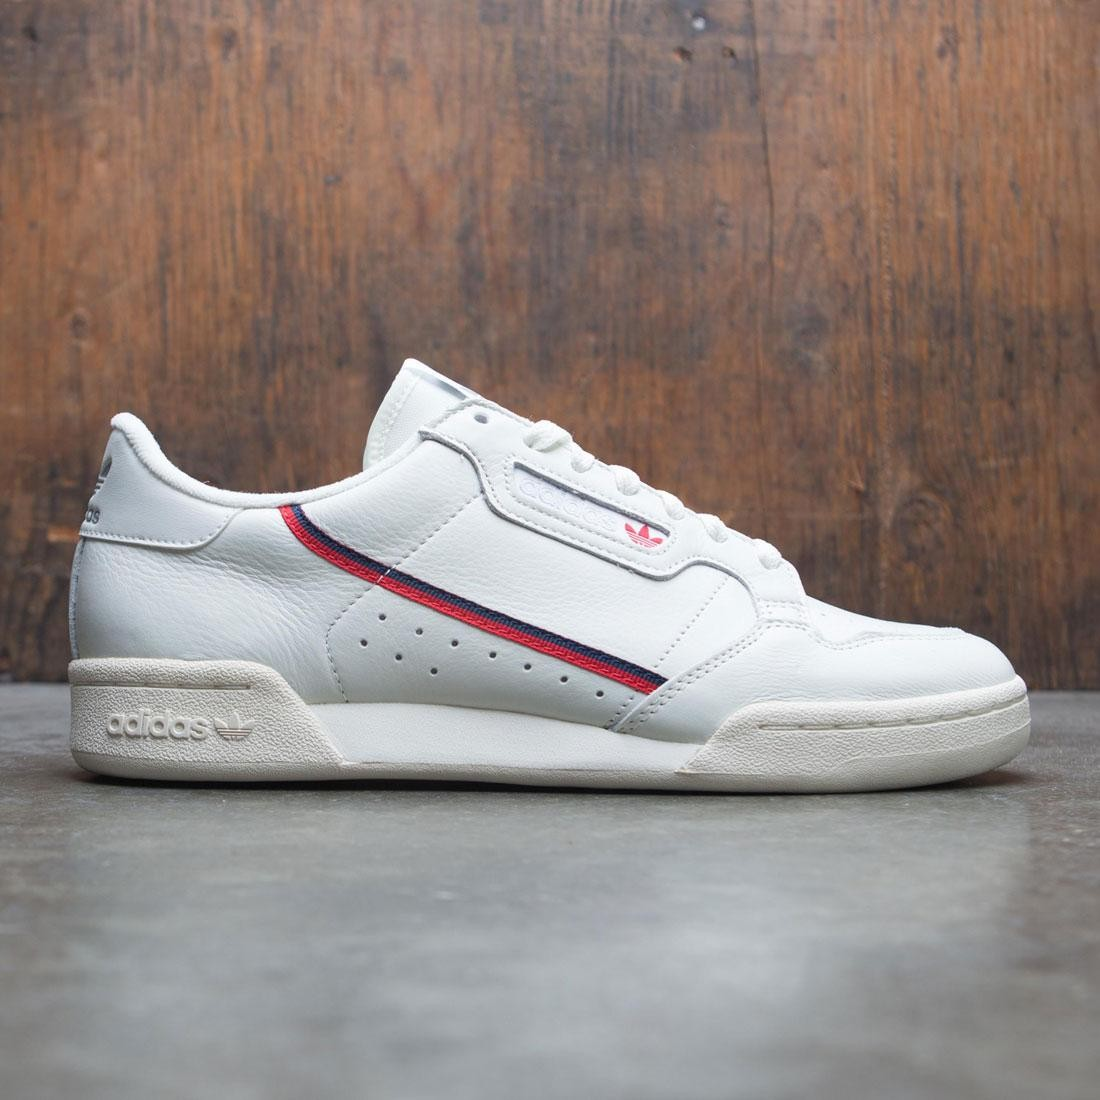 adidas Originals Continental 80 Rascal white tint off white scarlet